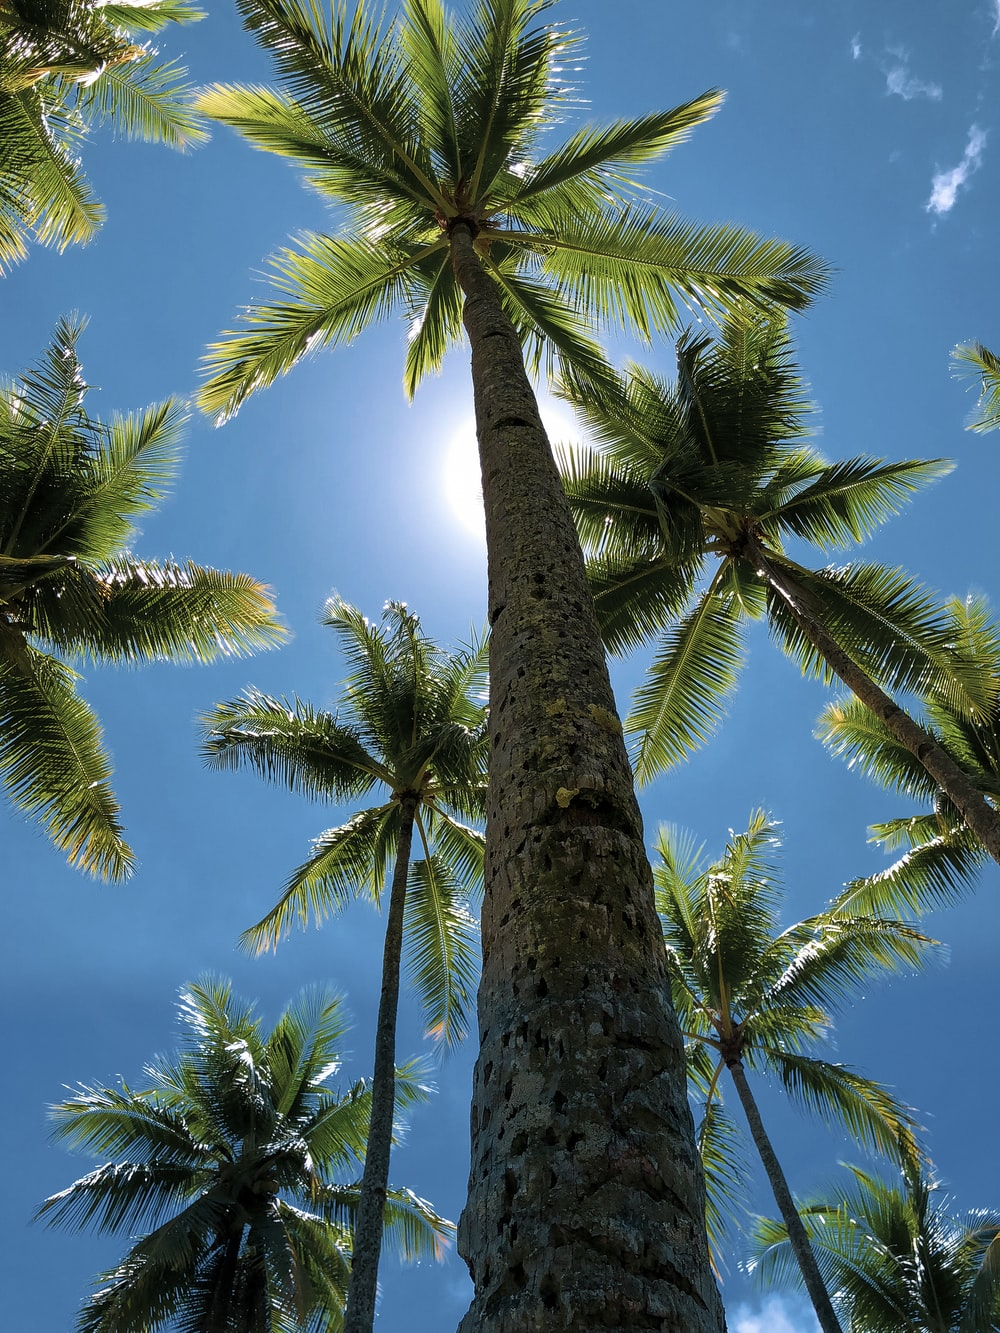 low-angle view of palm trees during daytime